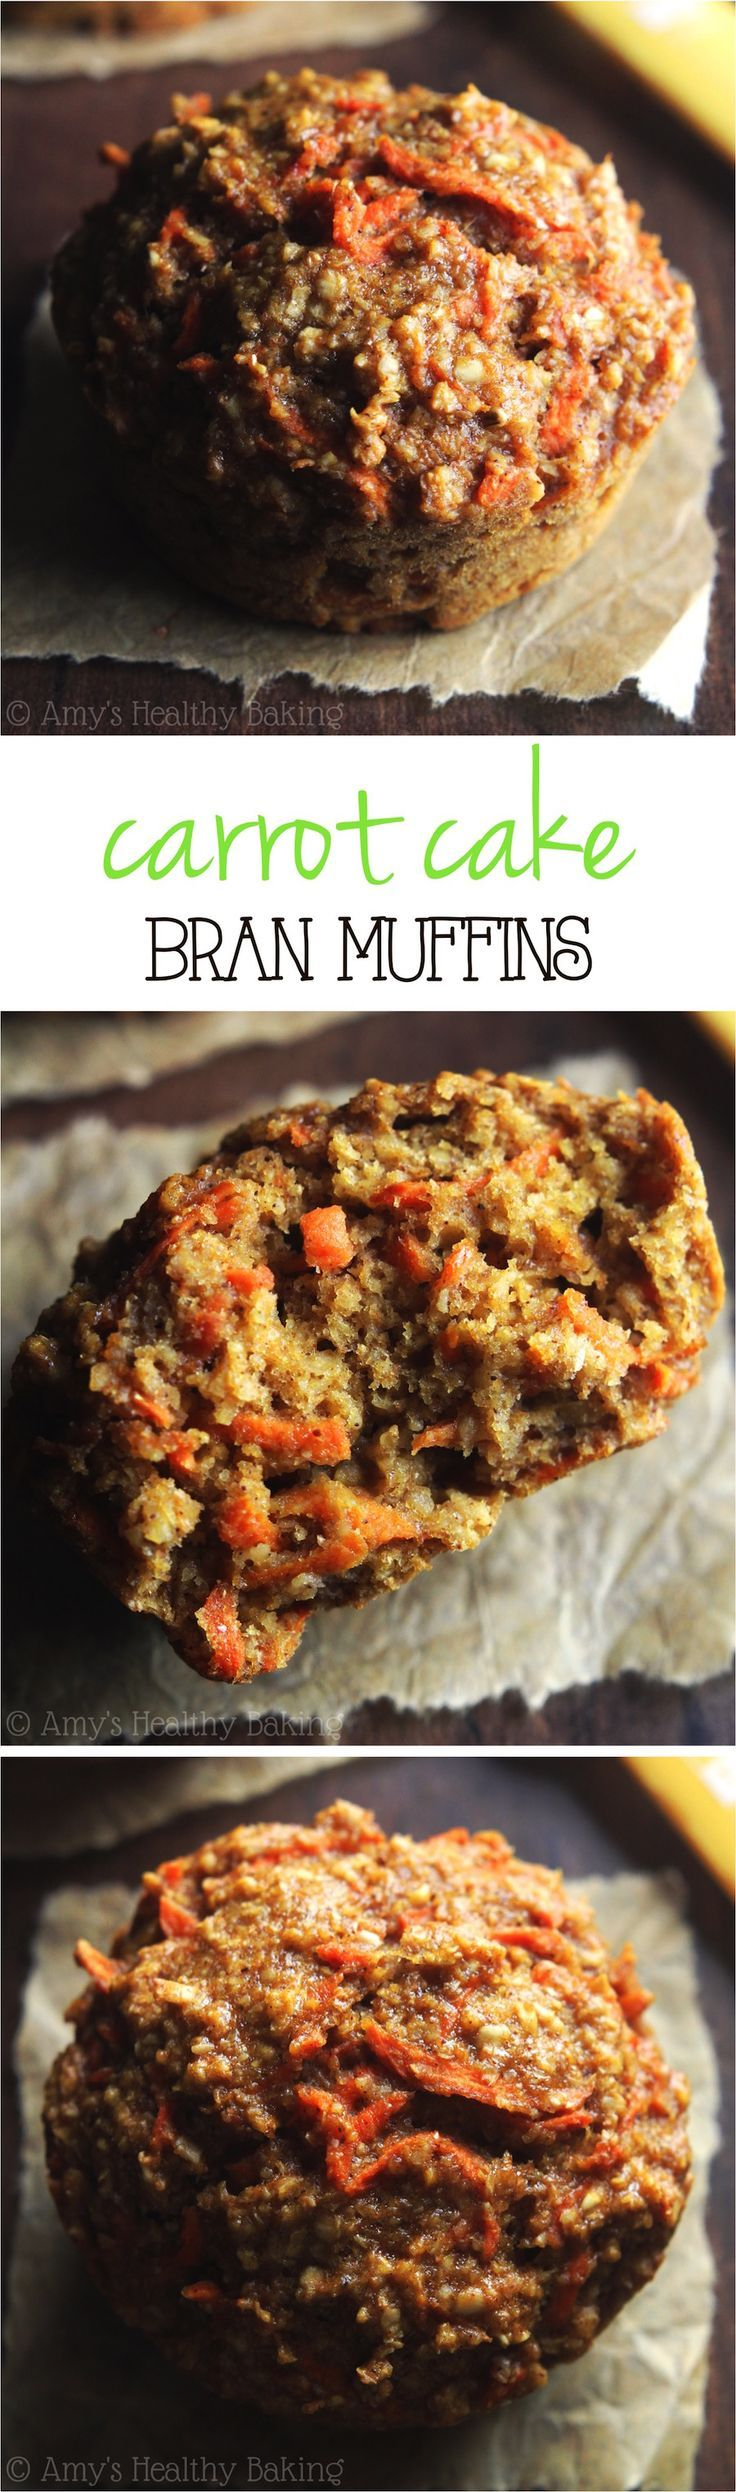 Clean-Eating Carrot Cake Bran Muffins -- one simple trick makes these the moistest bran muffins ever! They practically taste like cupcakes!